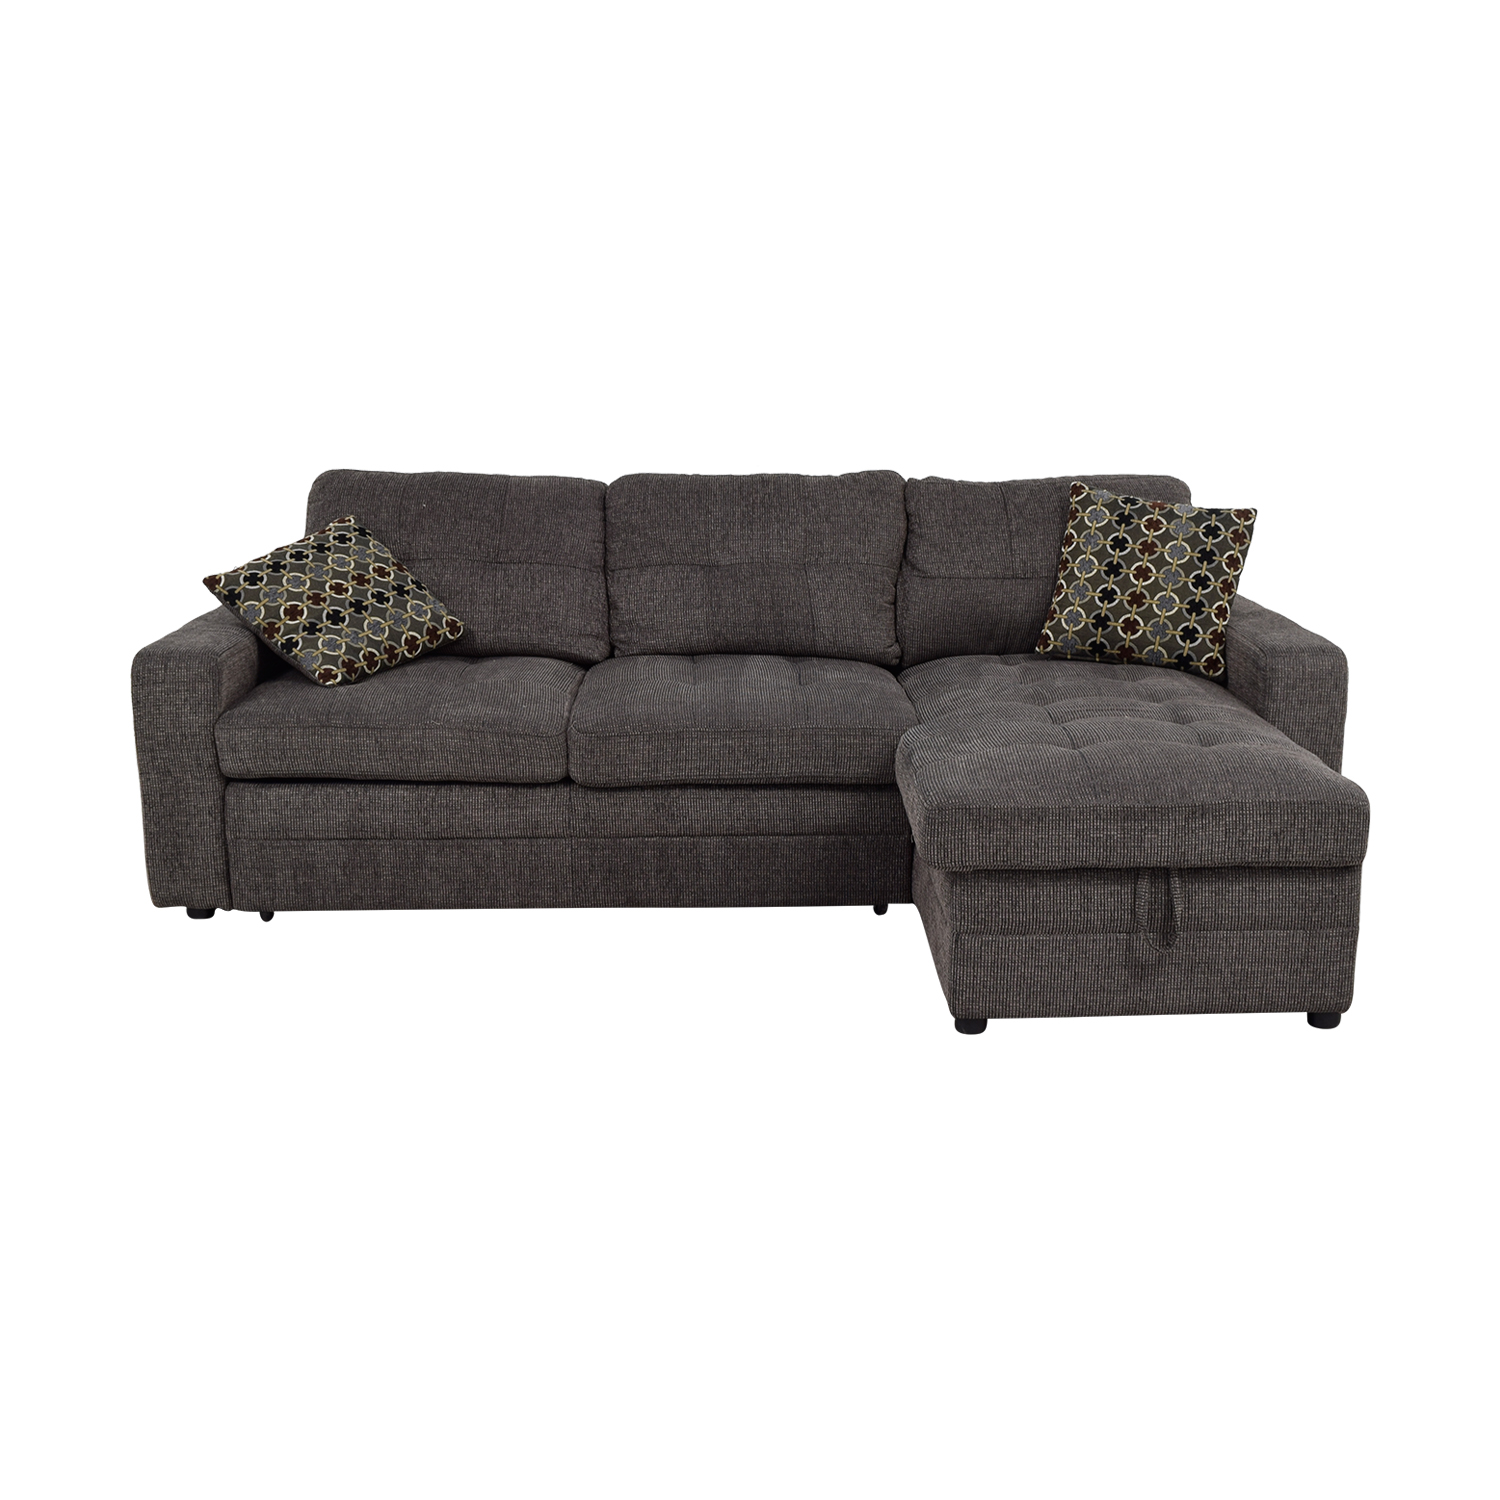 grey tweed sectional sofa restoration hardware sleeper sofas comfortable 45 off twin to full sofabed with